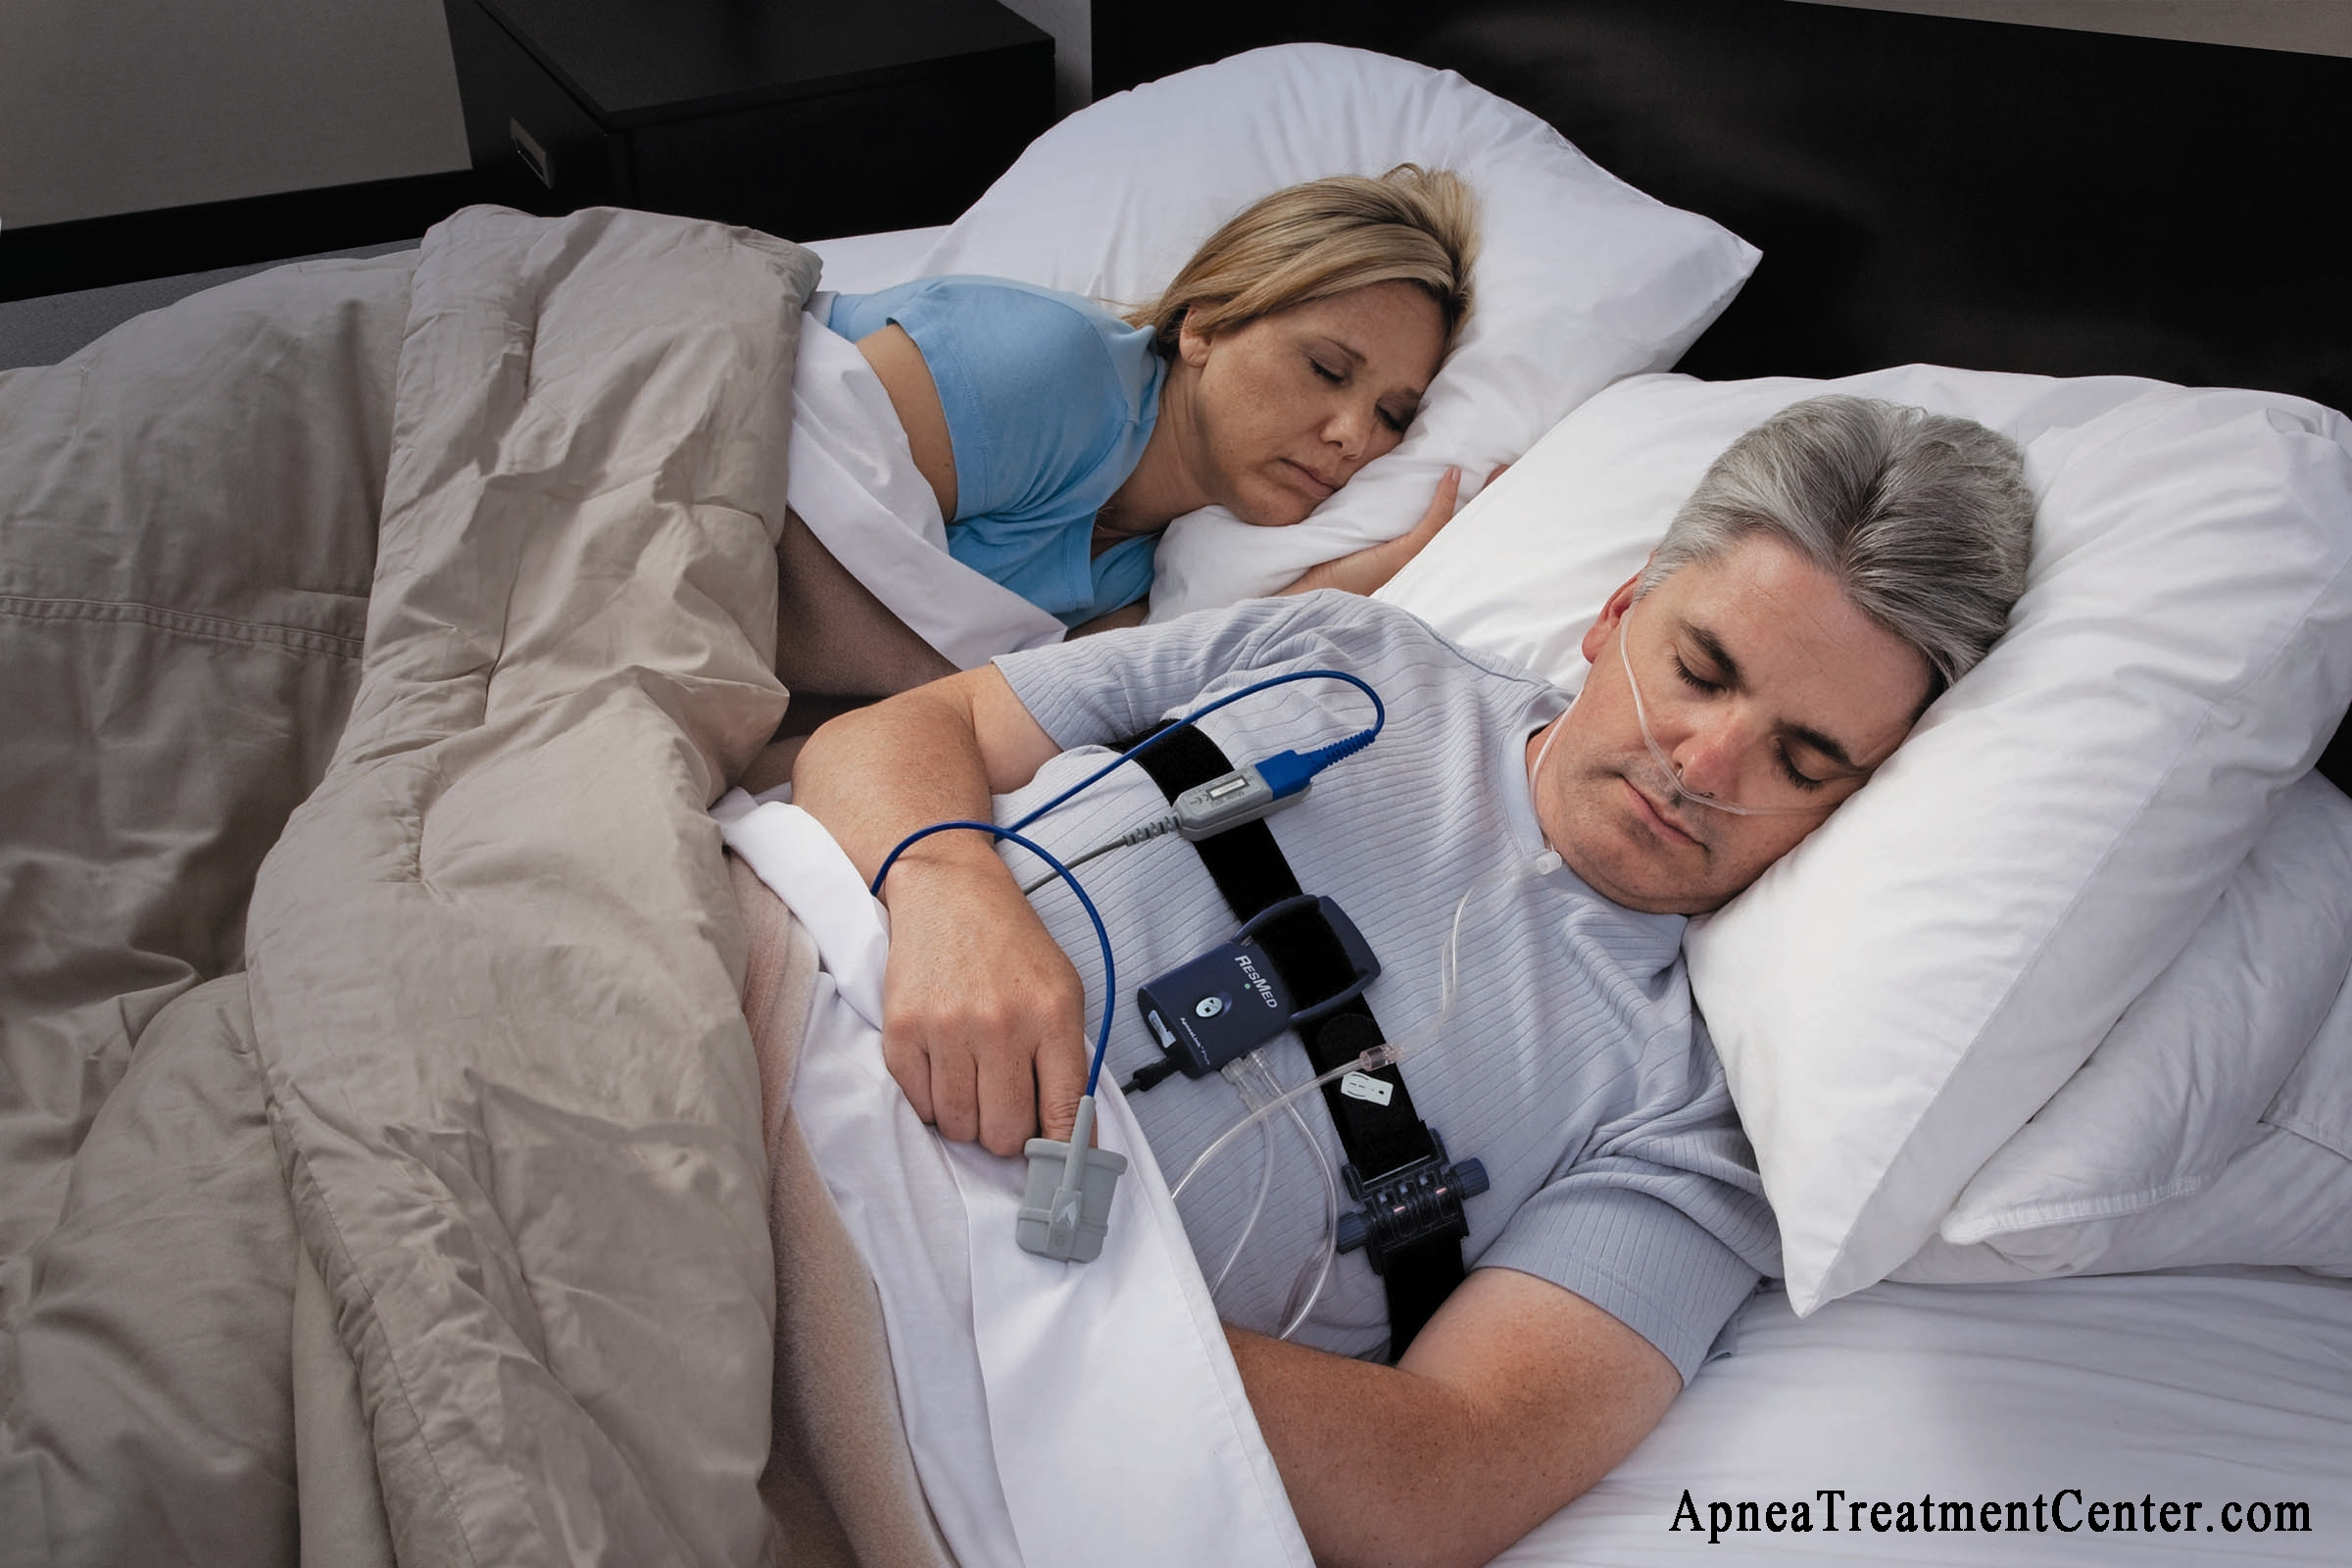 Sleep Apnea Test At Home: Your Best Bet for Diagnosis?